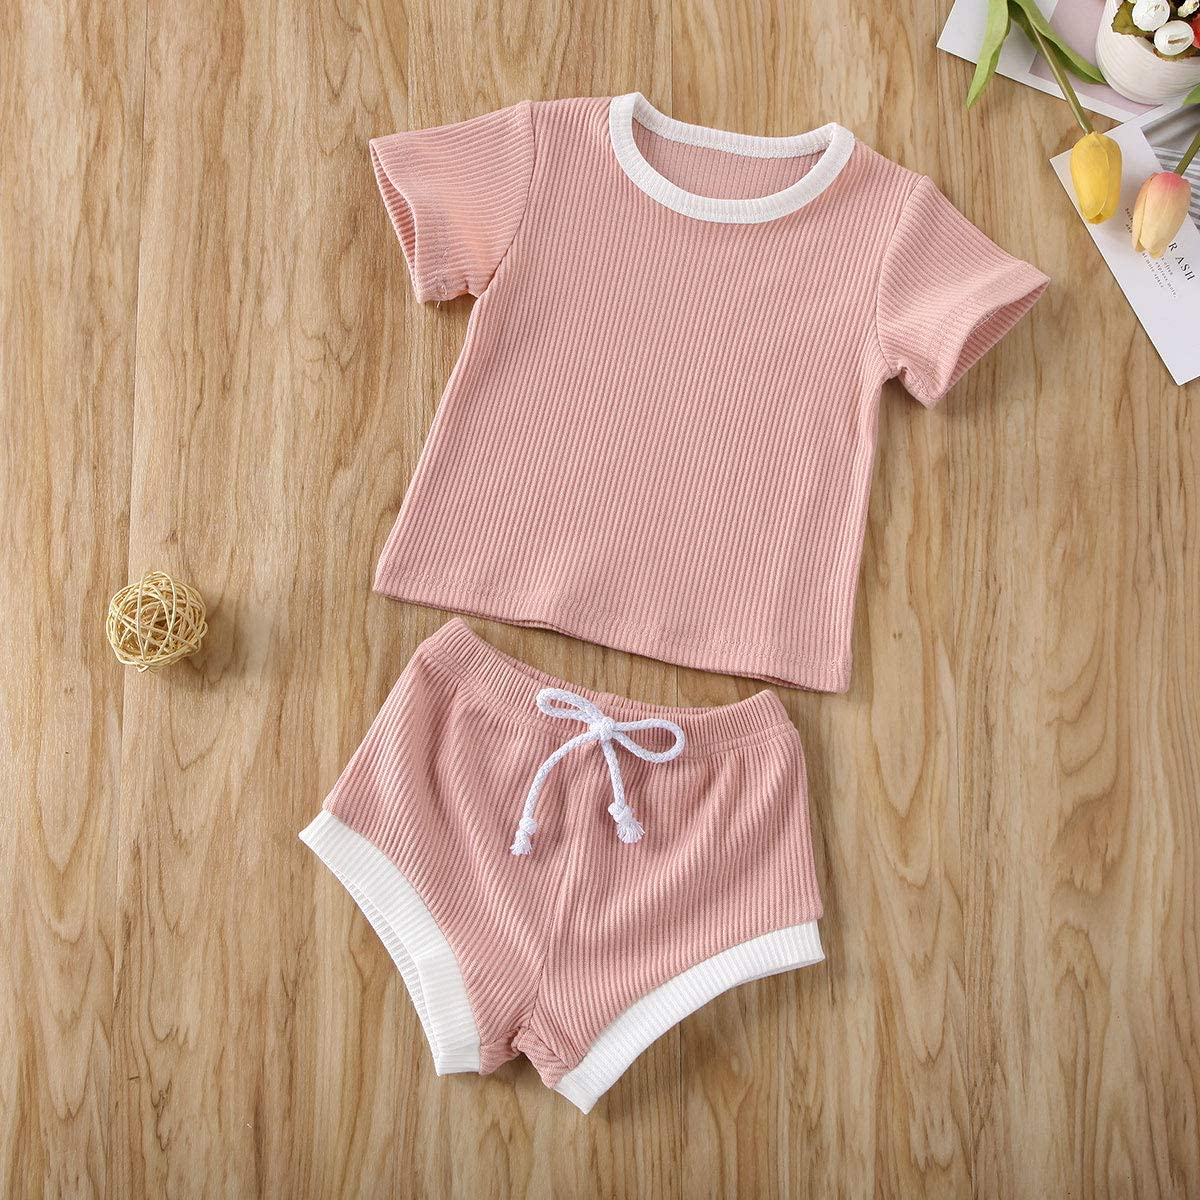 Baby Unisex Pajamas Organic Cotton Clothing Set for Infant Baby Boys Girls Top with Pants Set 2 Piece Outfit